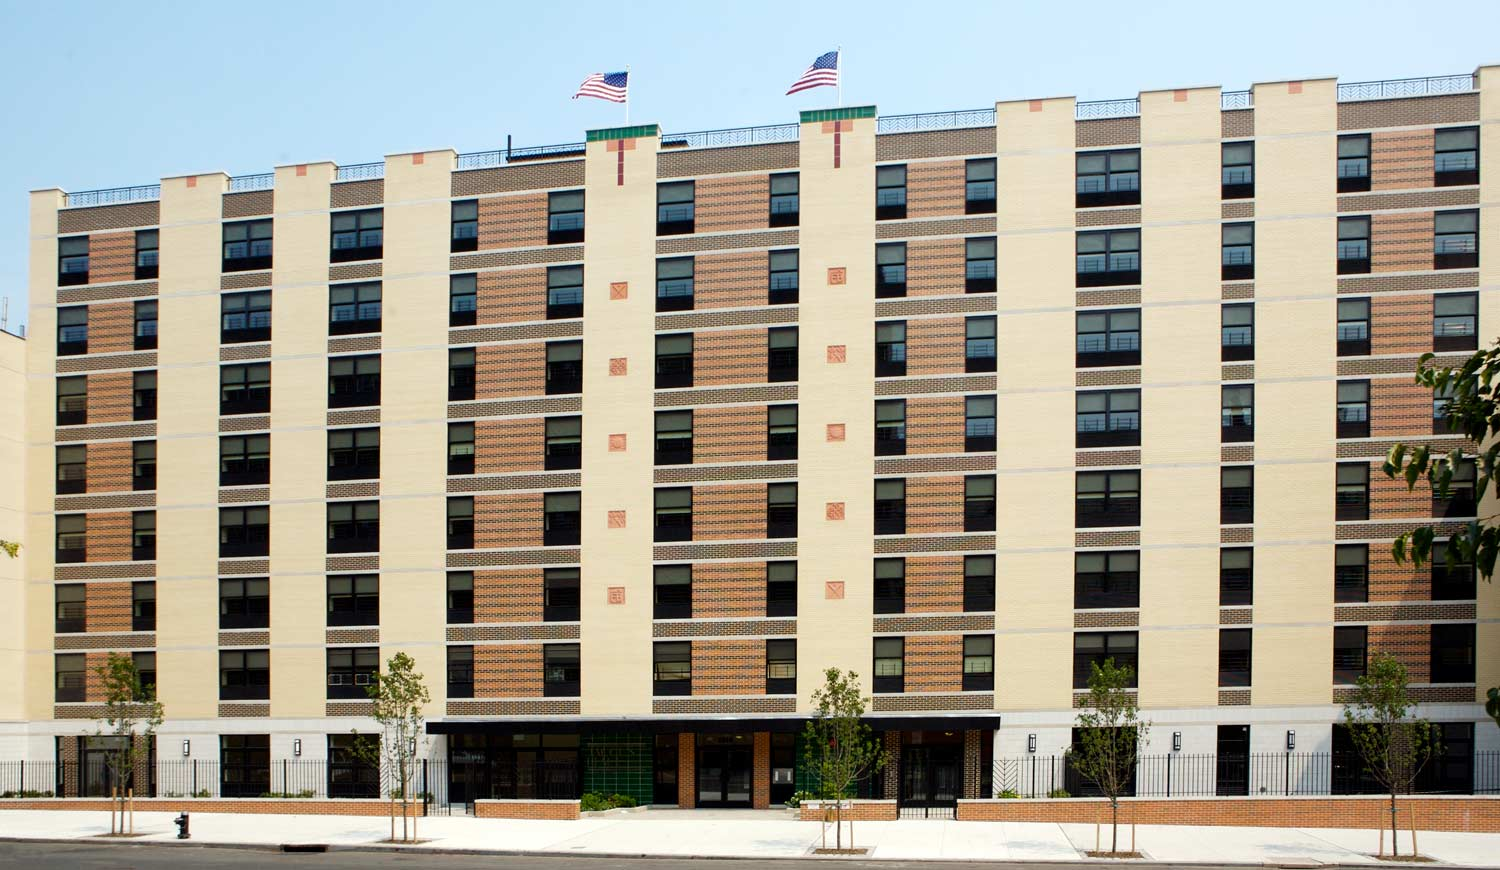 Jacob's Place combines affordable apartments with ground floor day care in an 8-story new construction.